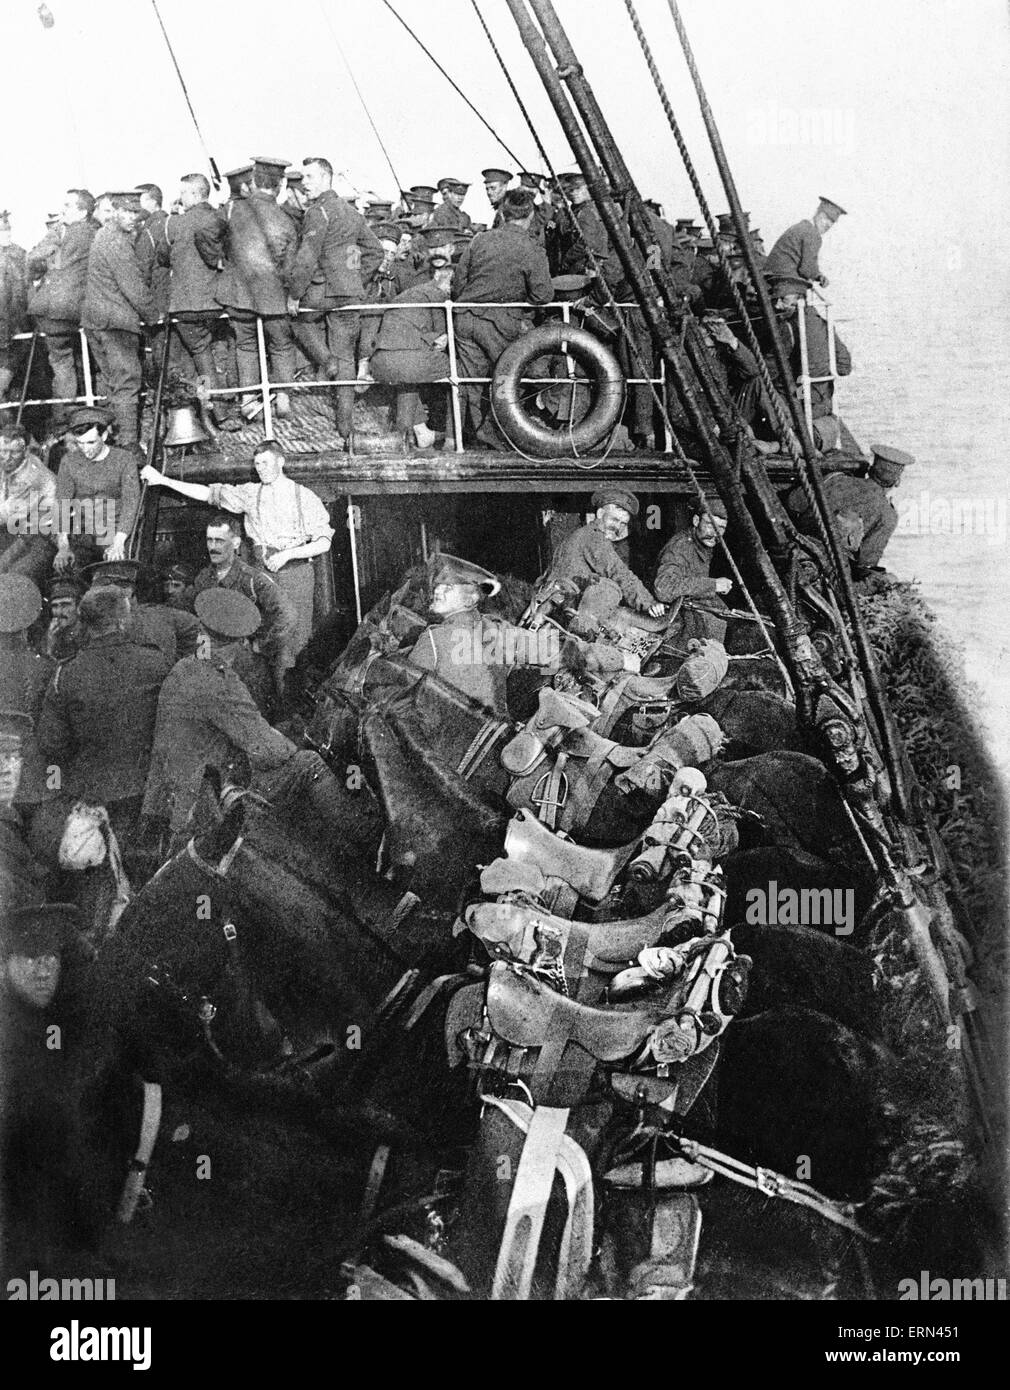 British cavalry and horses on board ship on their way to France, August 1914.  The British Expeditionary Force were - Stock Image